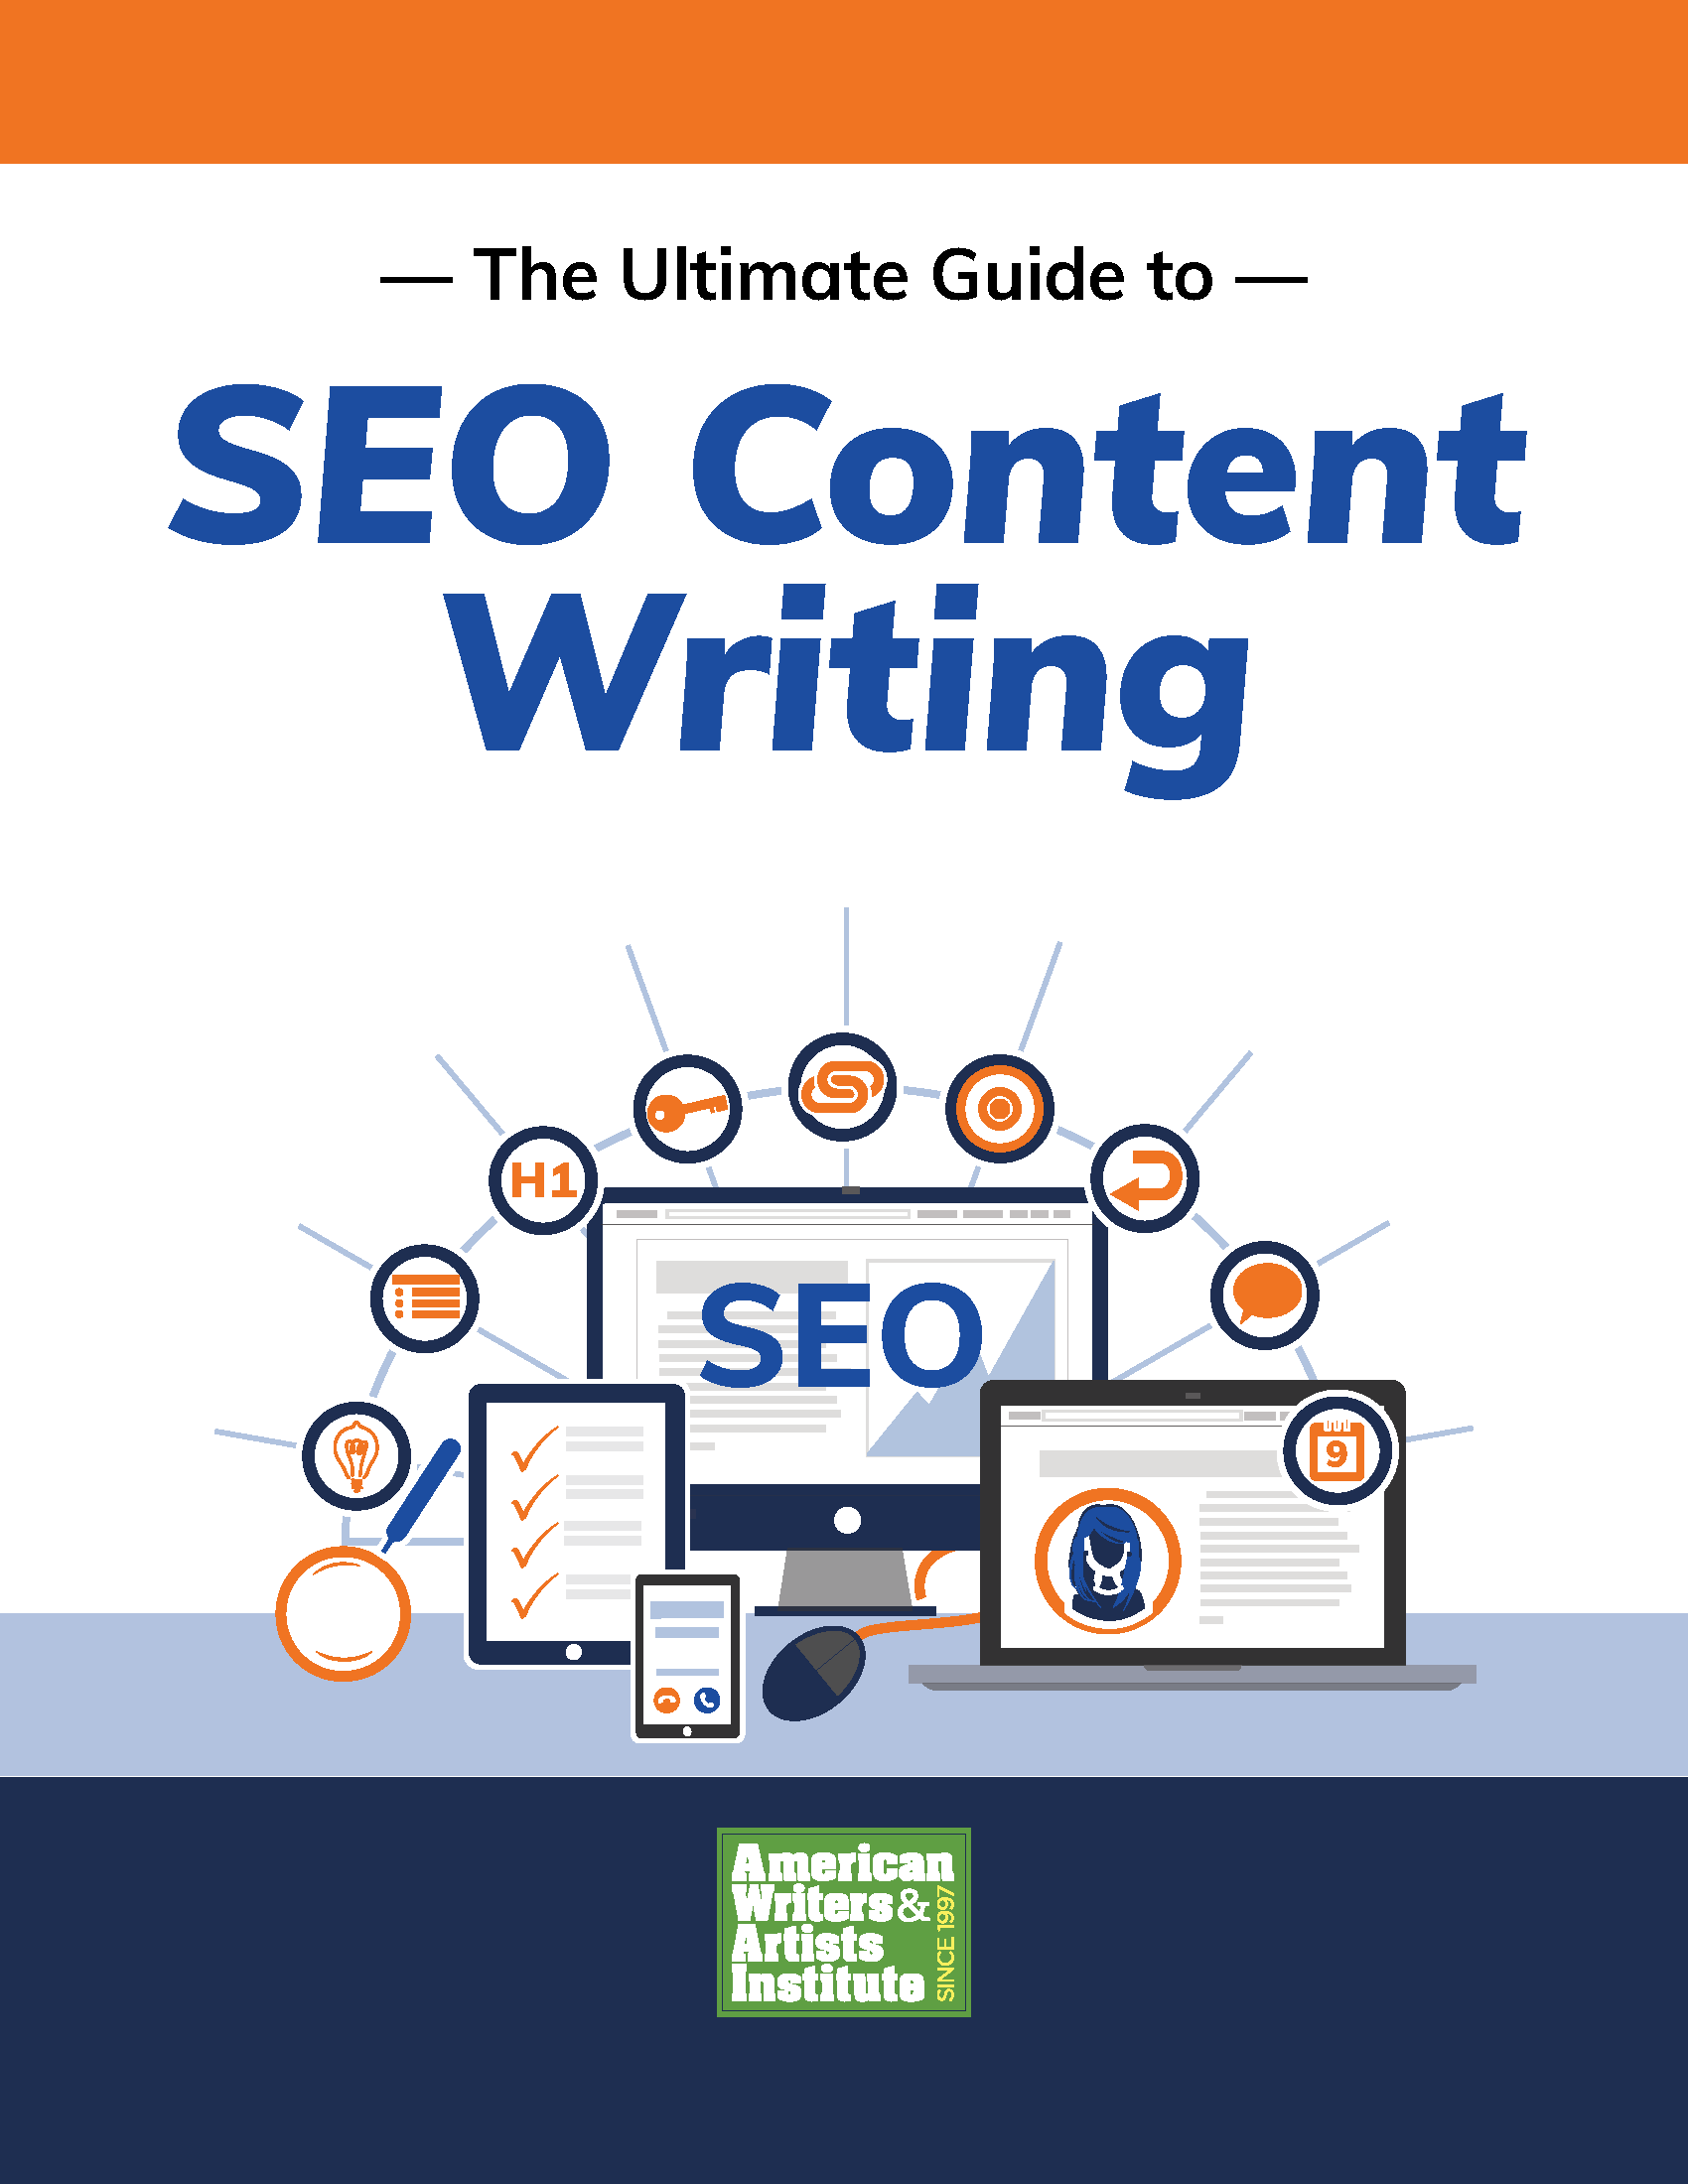 The Ultimate Guide to SEO Content Writing